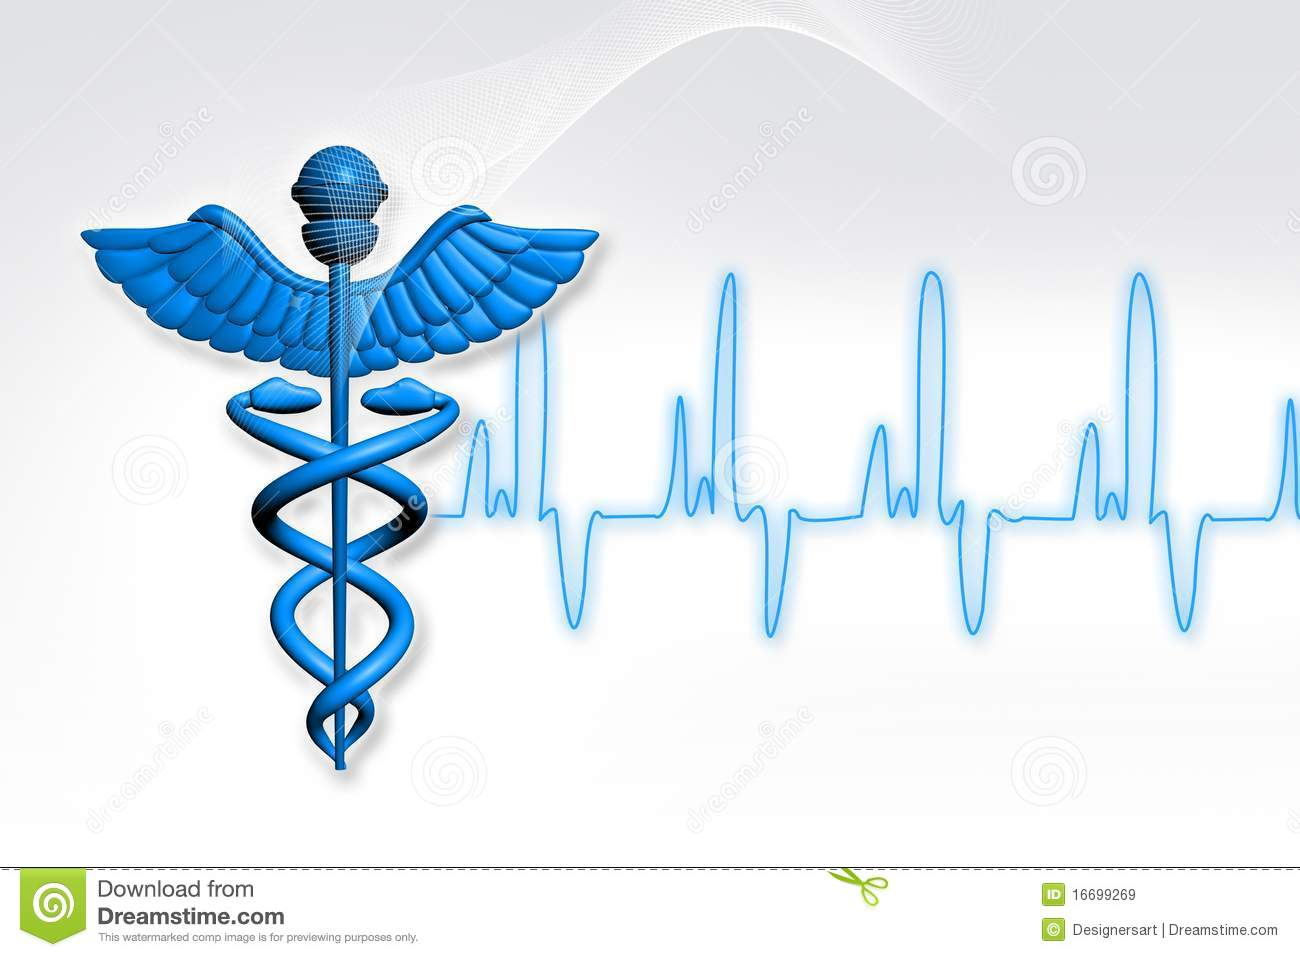 Royalty Free Stock Images Symbol Medicine Image16699269 on Insurance Icon Clip Art